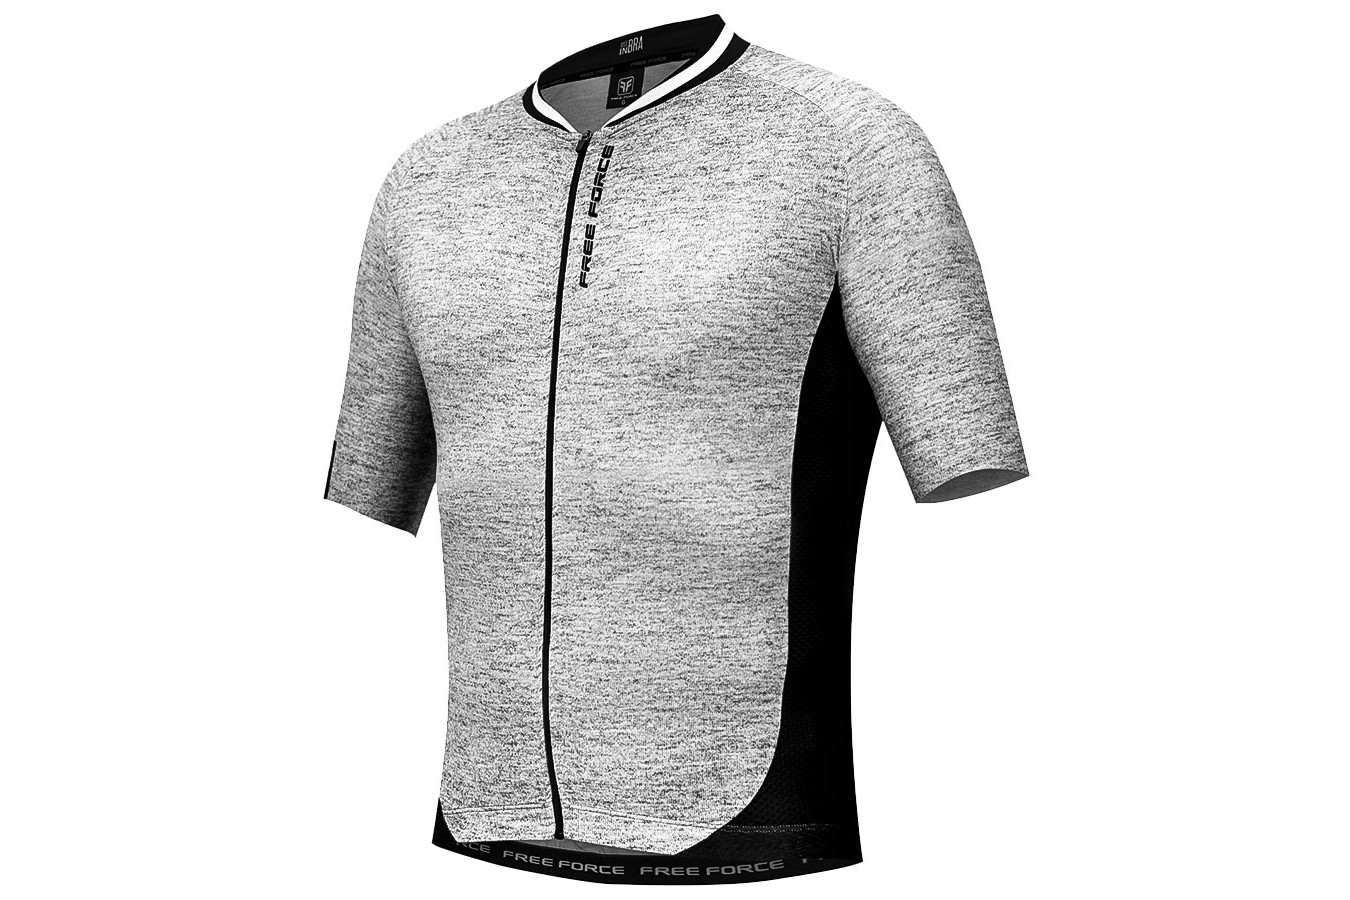 Camisa Ciclista Training Blend Mescla - Free force